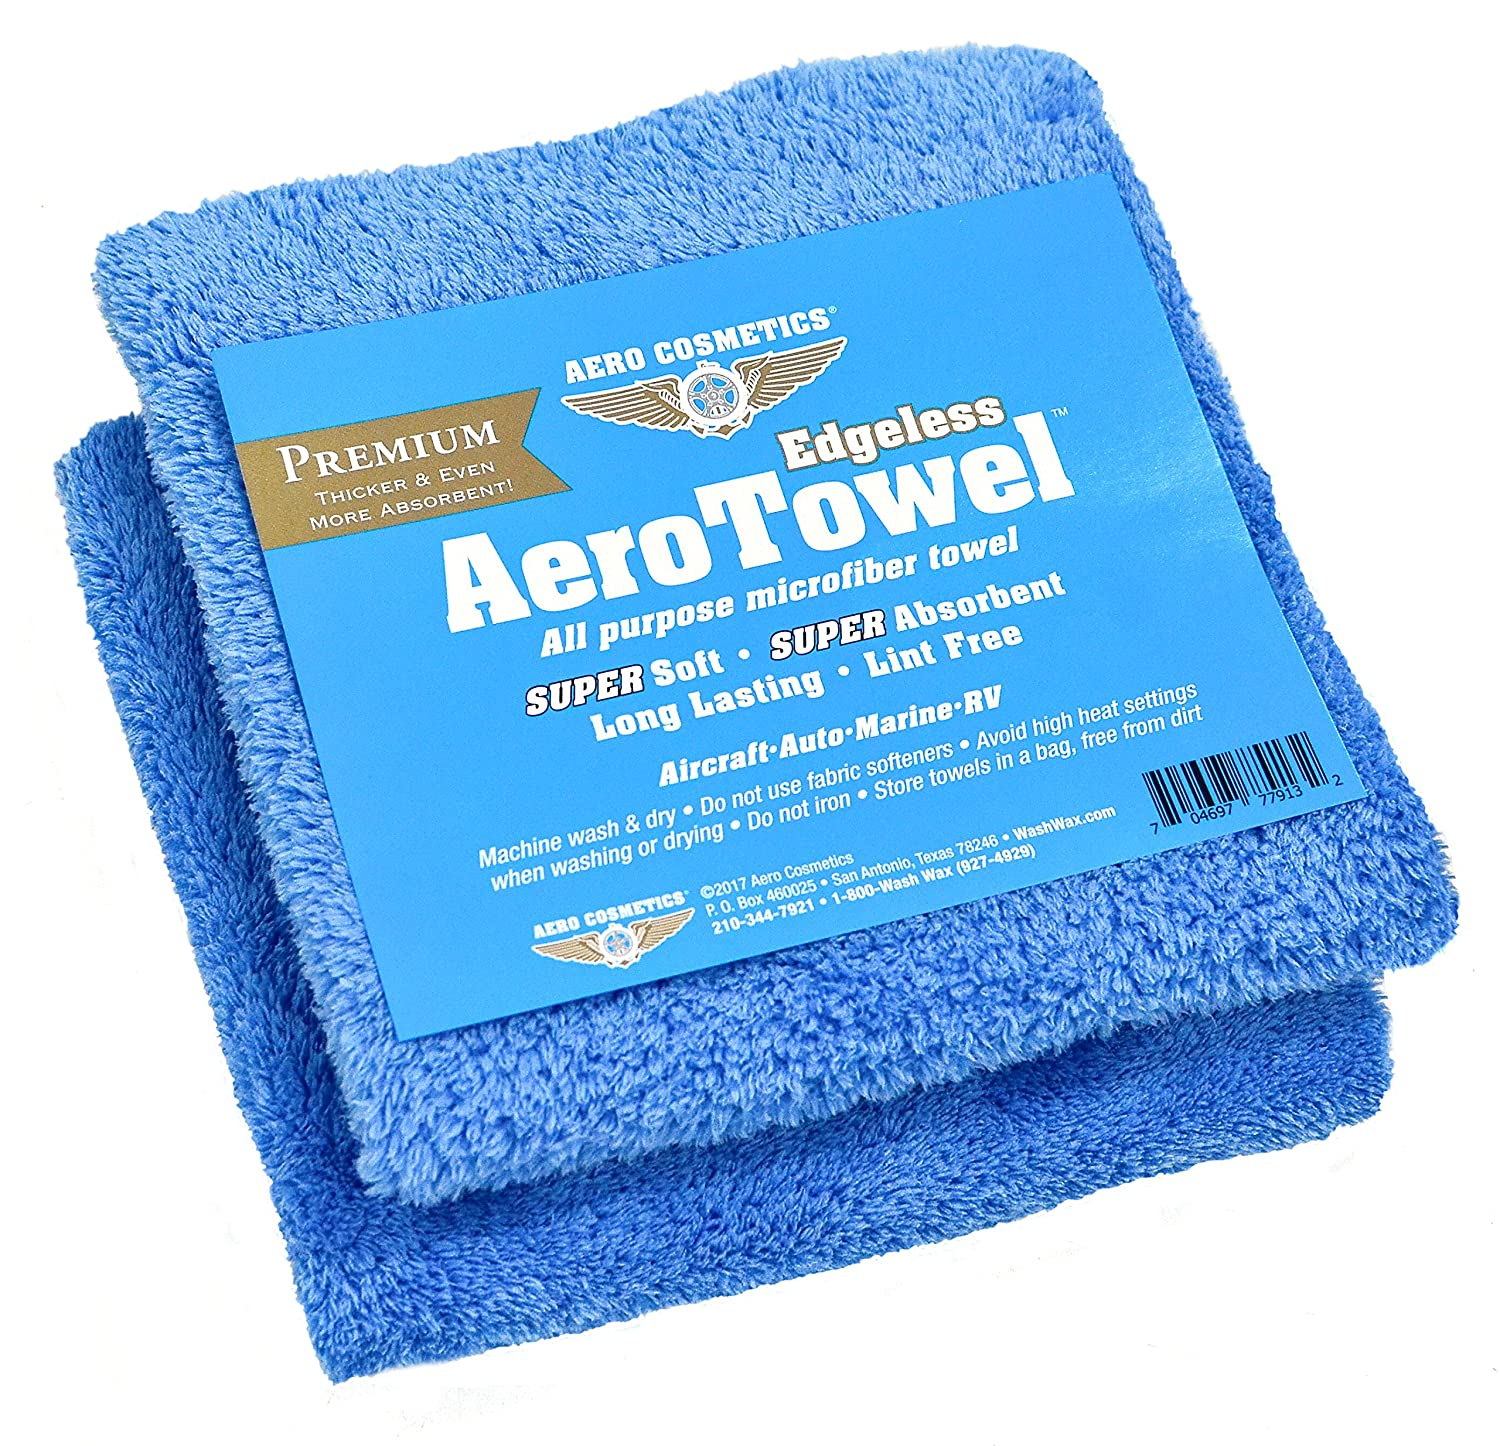 Premium Edgeless Microfiber Towels (2-Pack) Super Soft, Super Absorbent, Long Lasting, Lint Free for waterless car wash and wet washing! Aero Cosmetics